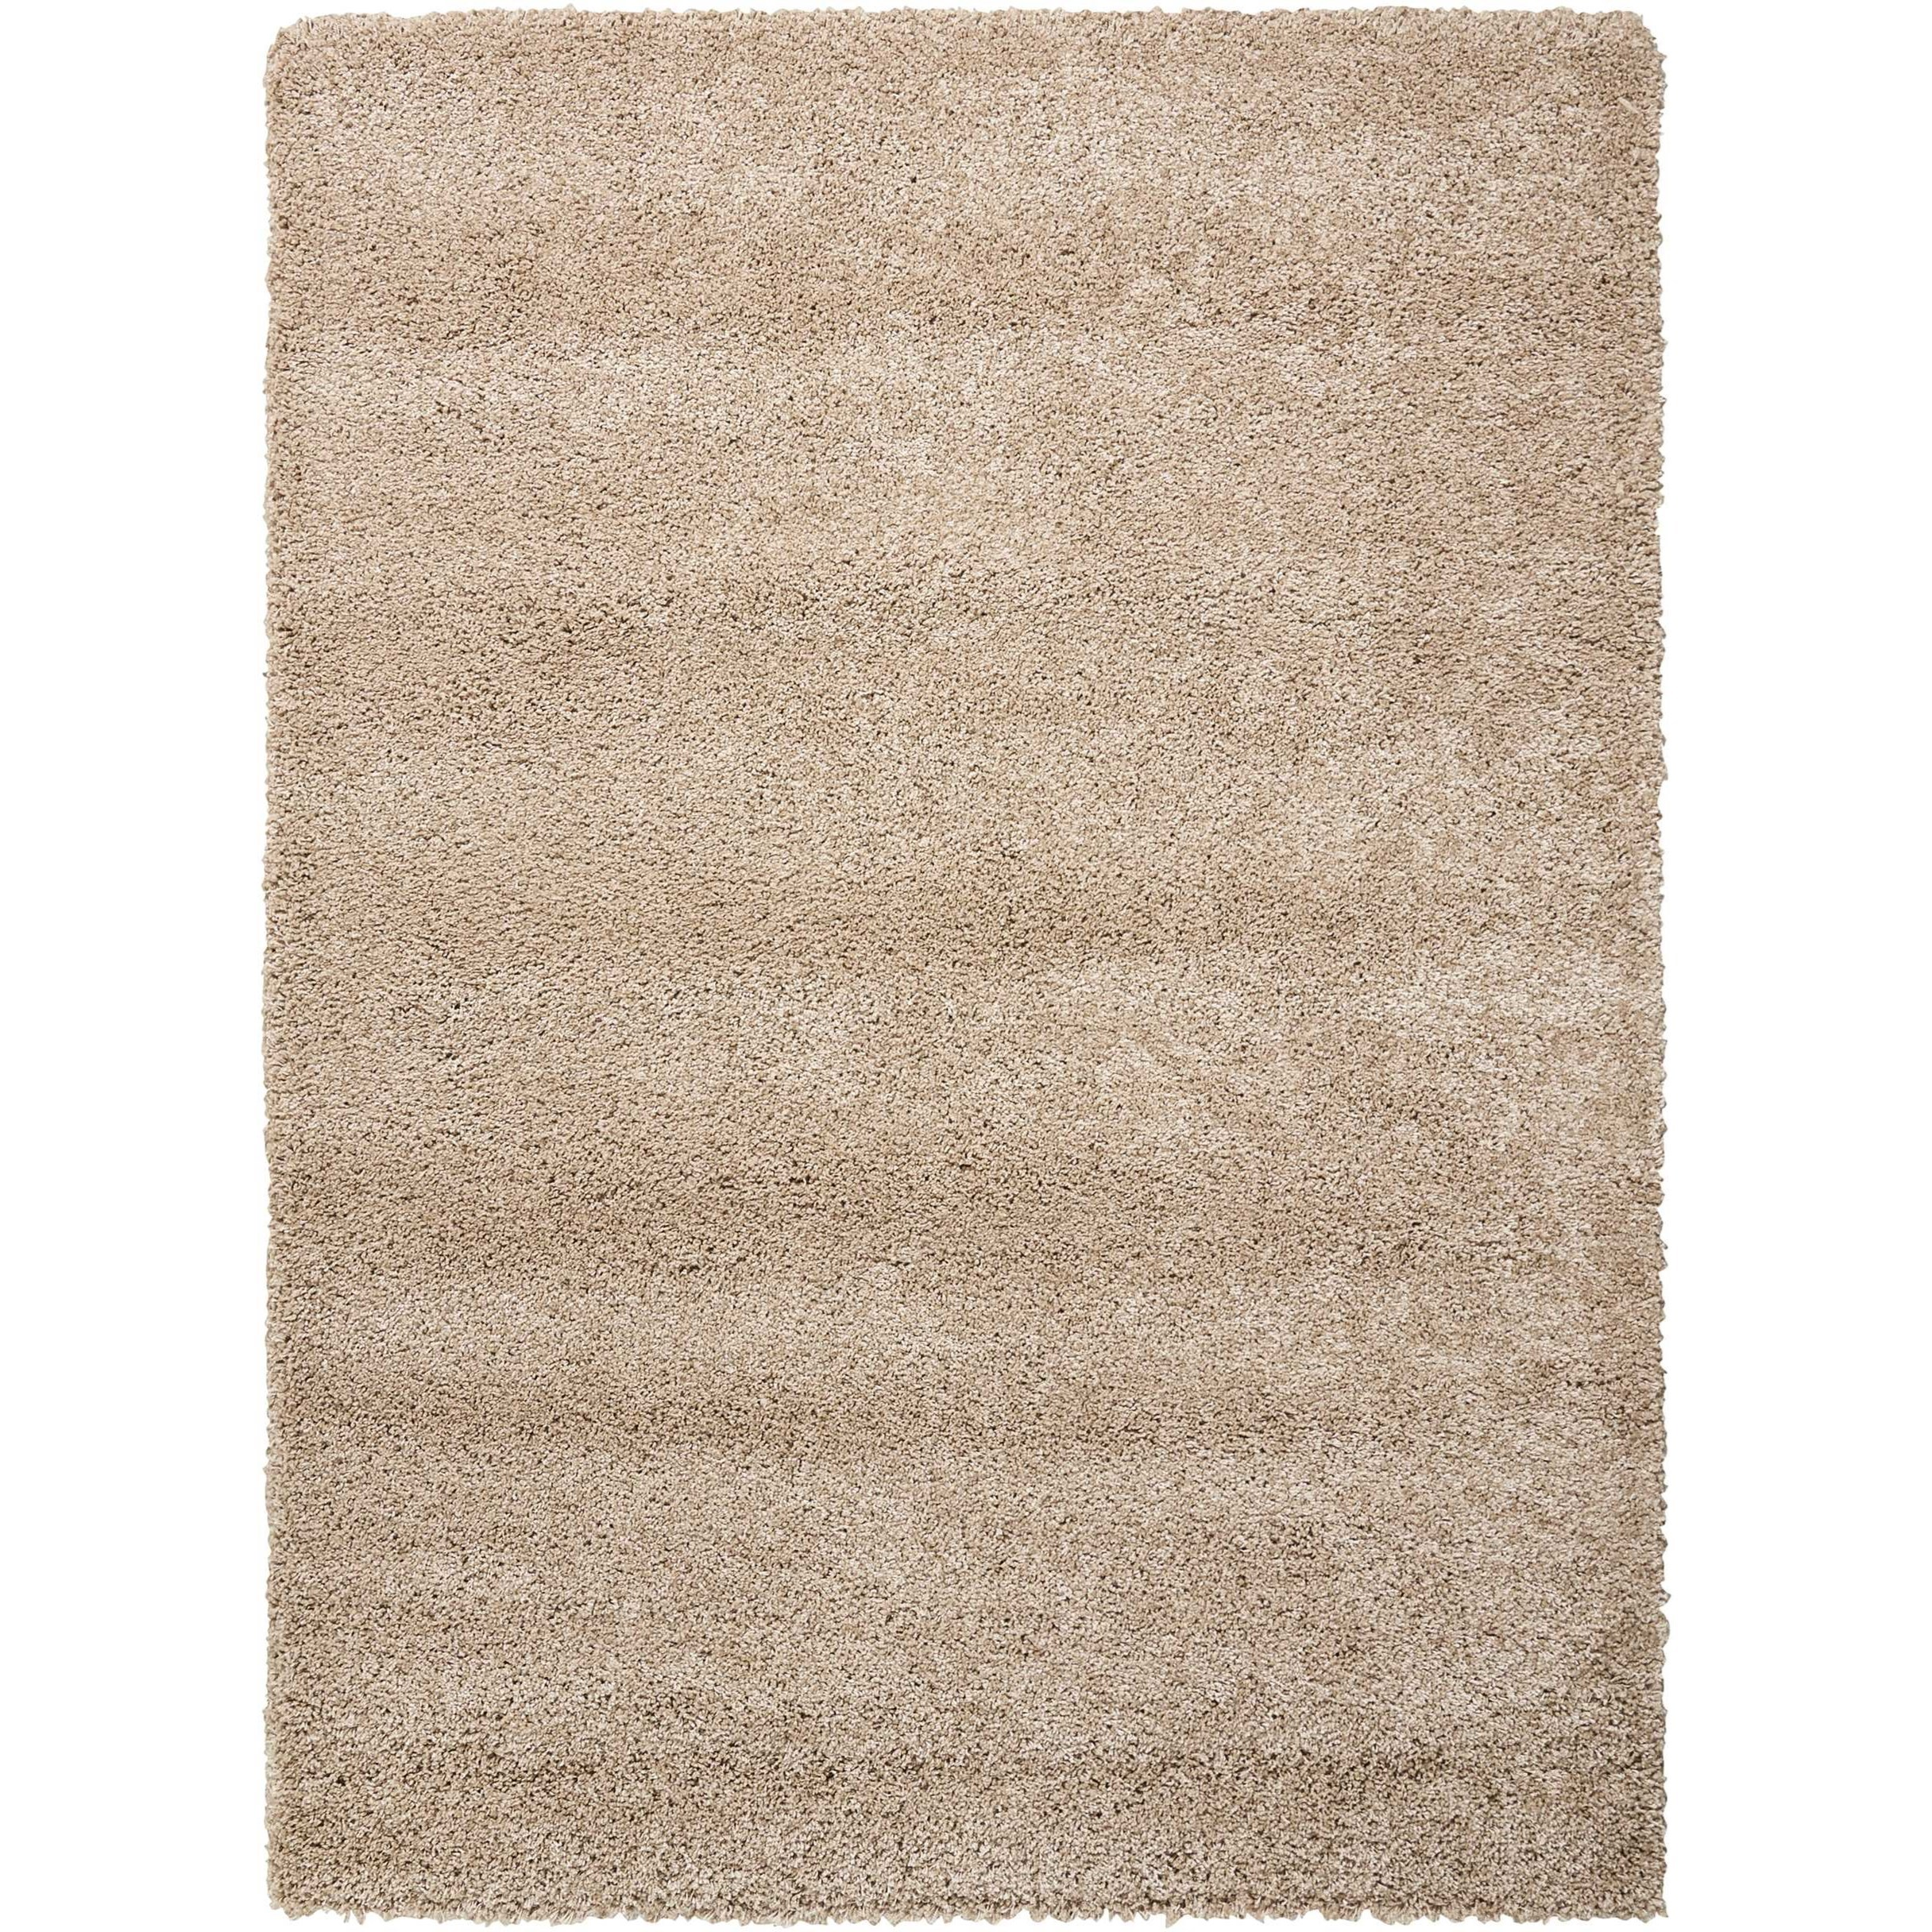 "Amore 3'11"" x 5'11"" Oyster Rectangle Rug by Nourison at Home Collections Furniture"